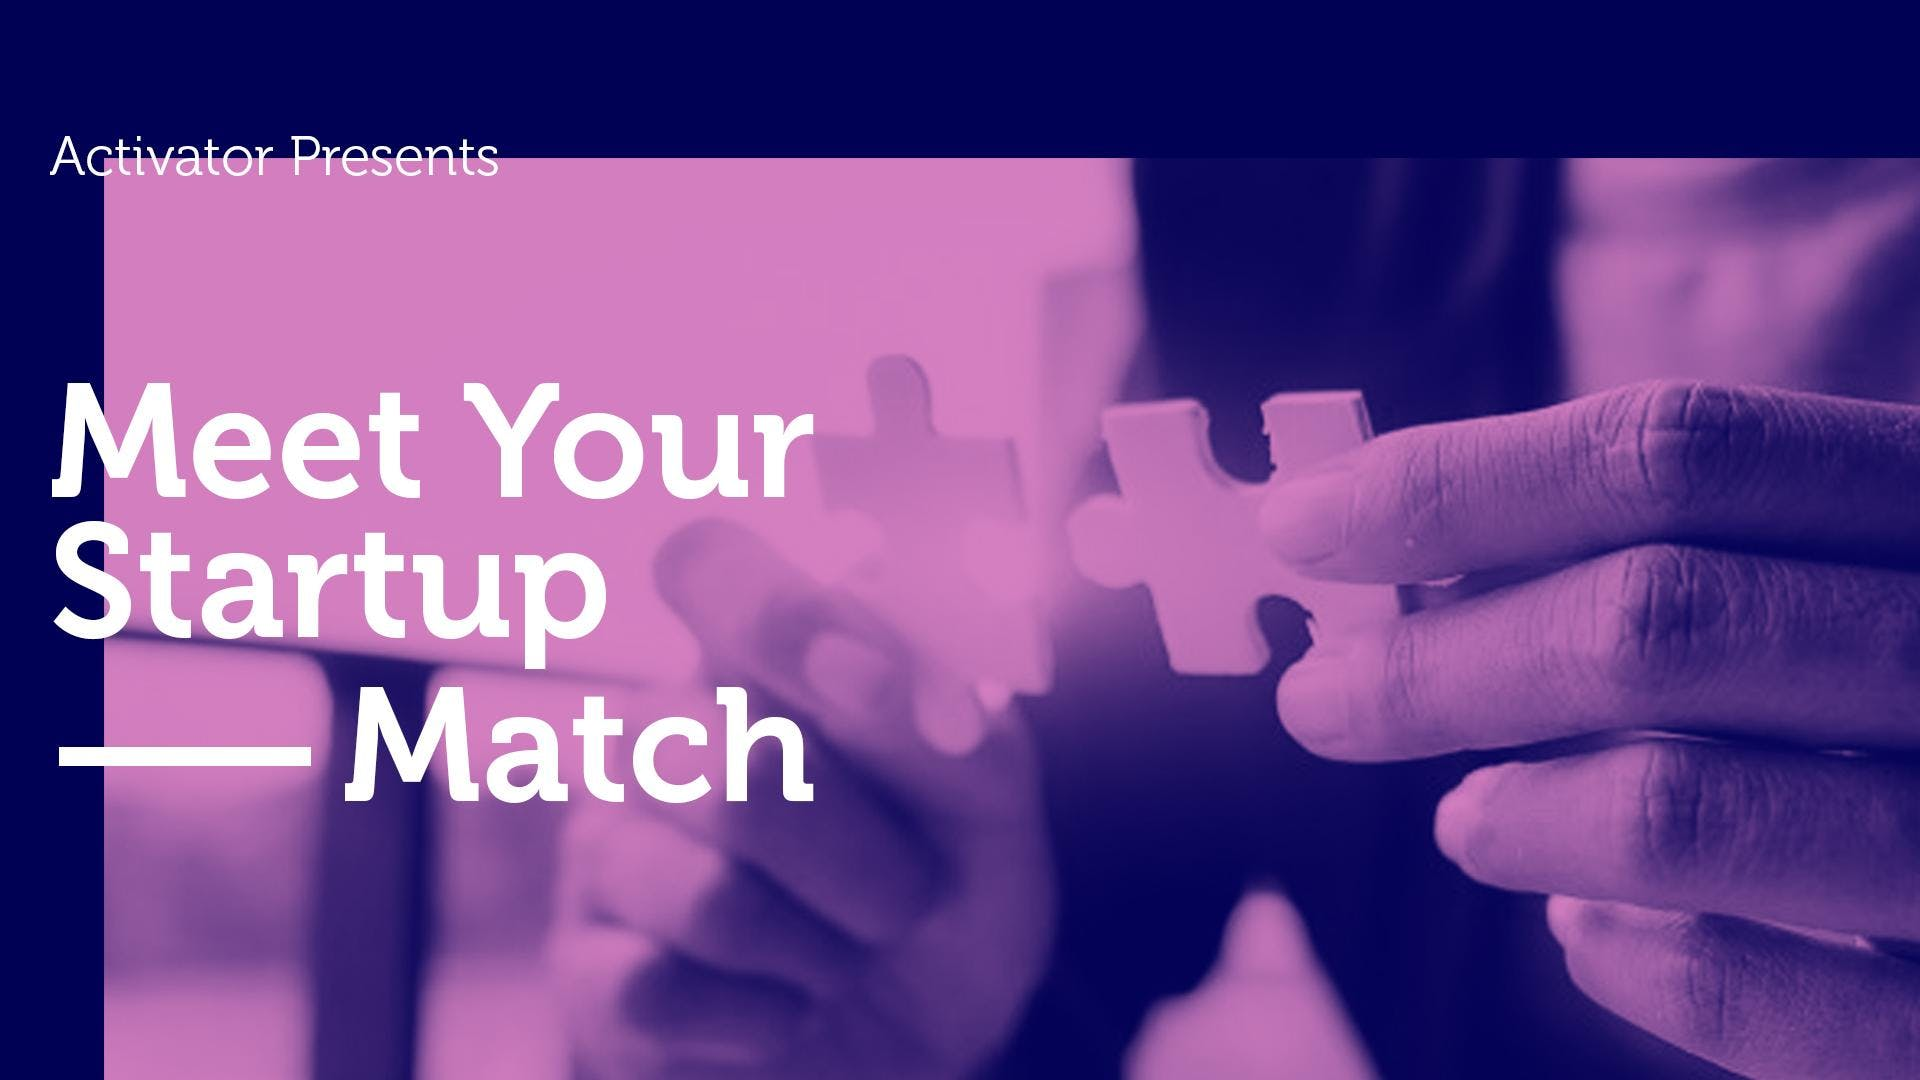 Check out Founder profiles at Matchmaking, job listings & salaries.